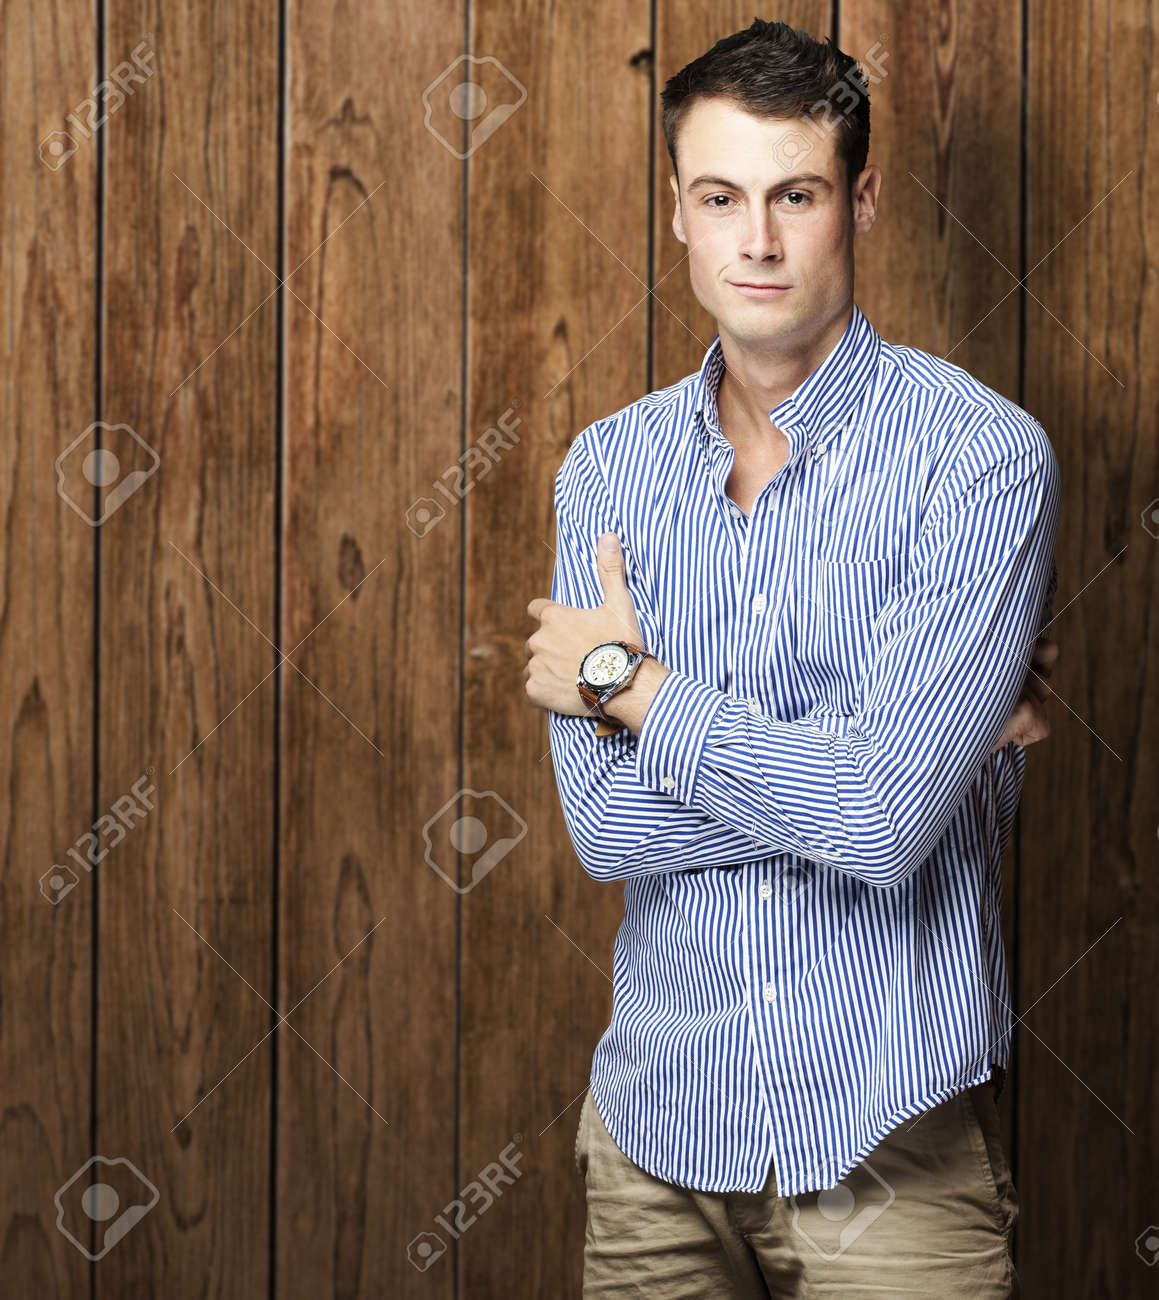 portrait of a serious young man against a wooden wall Stock Photo - 11507960